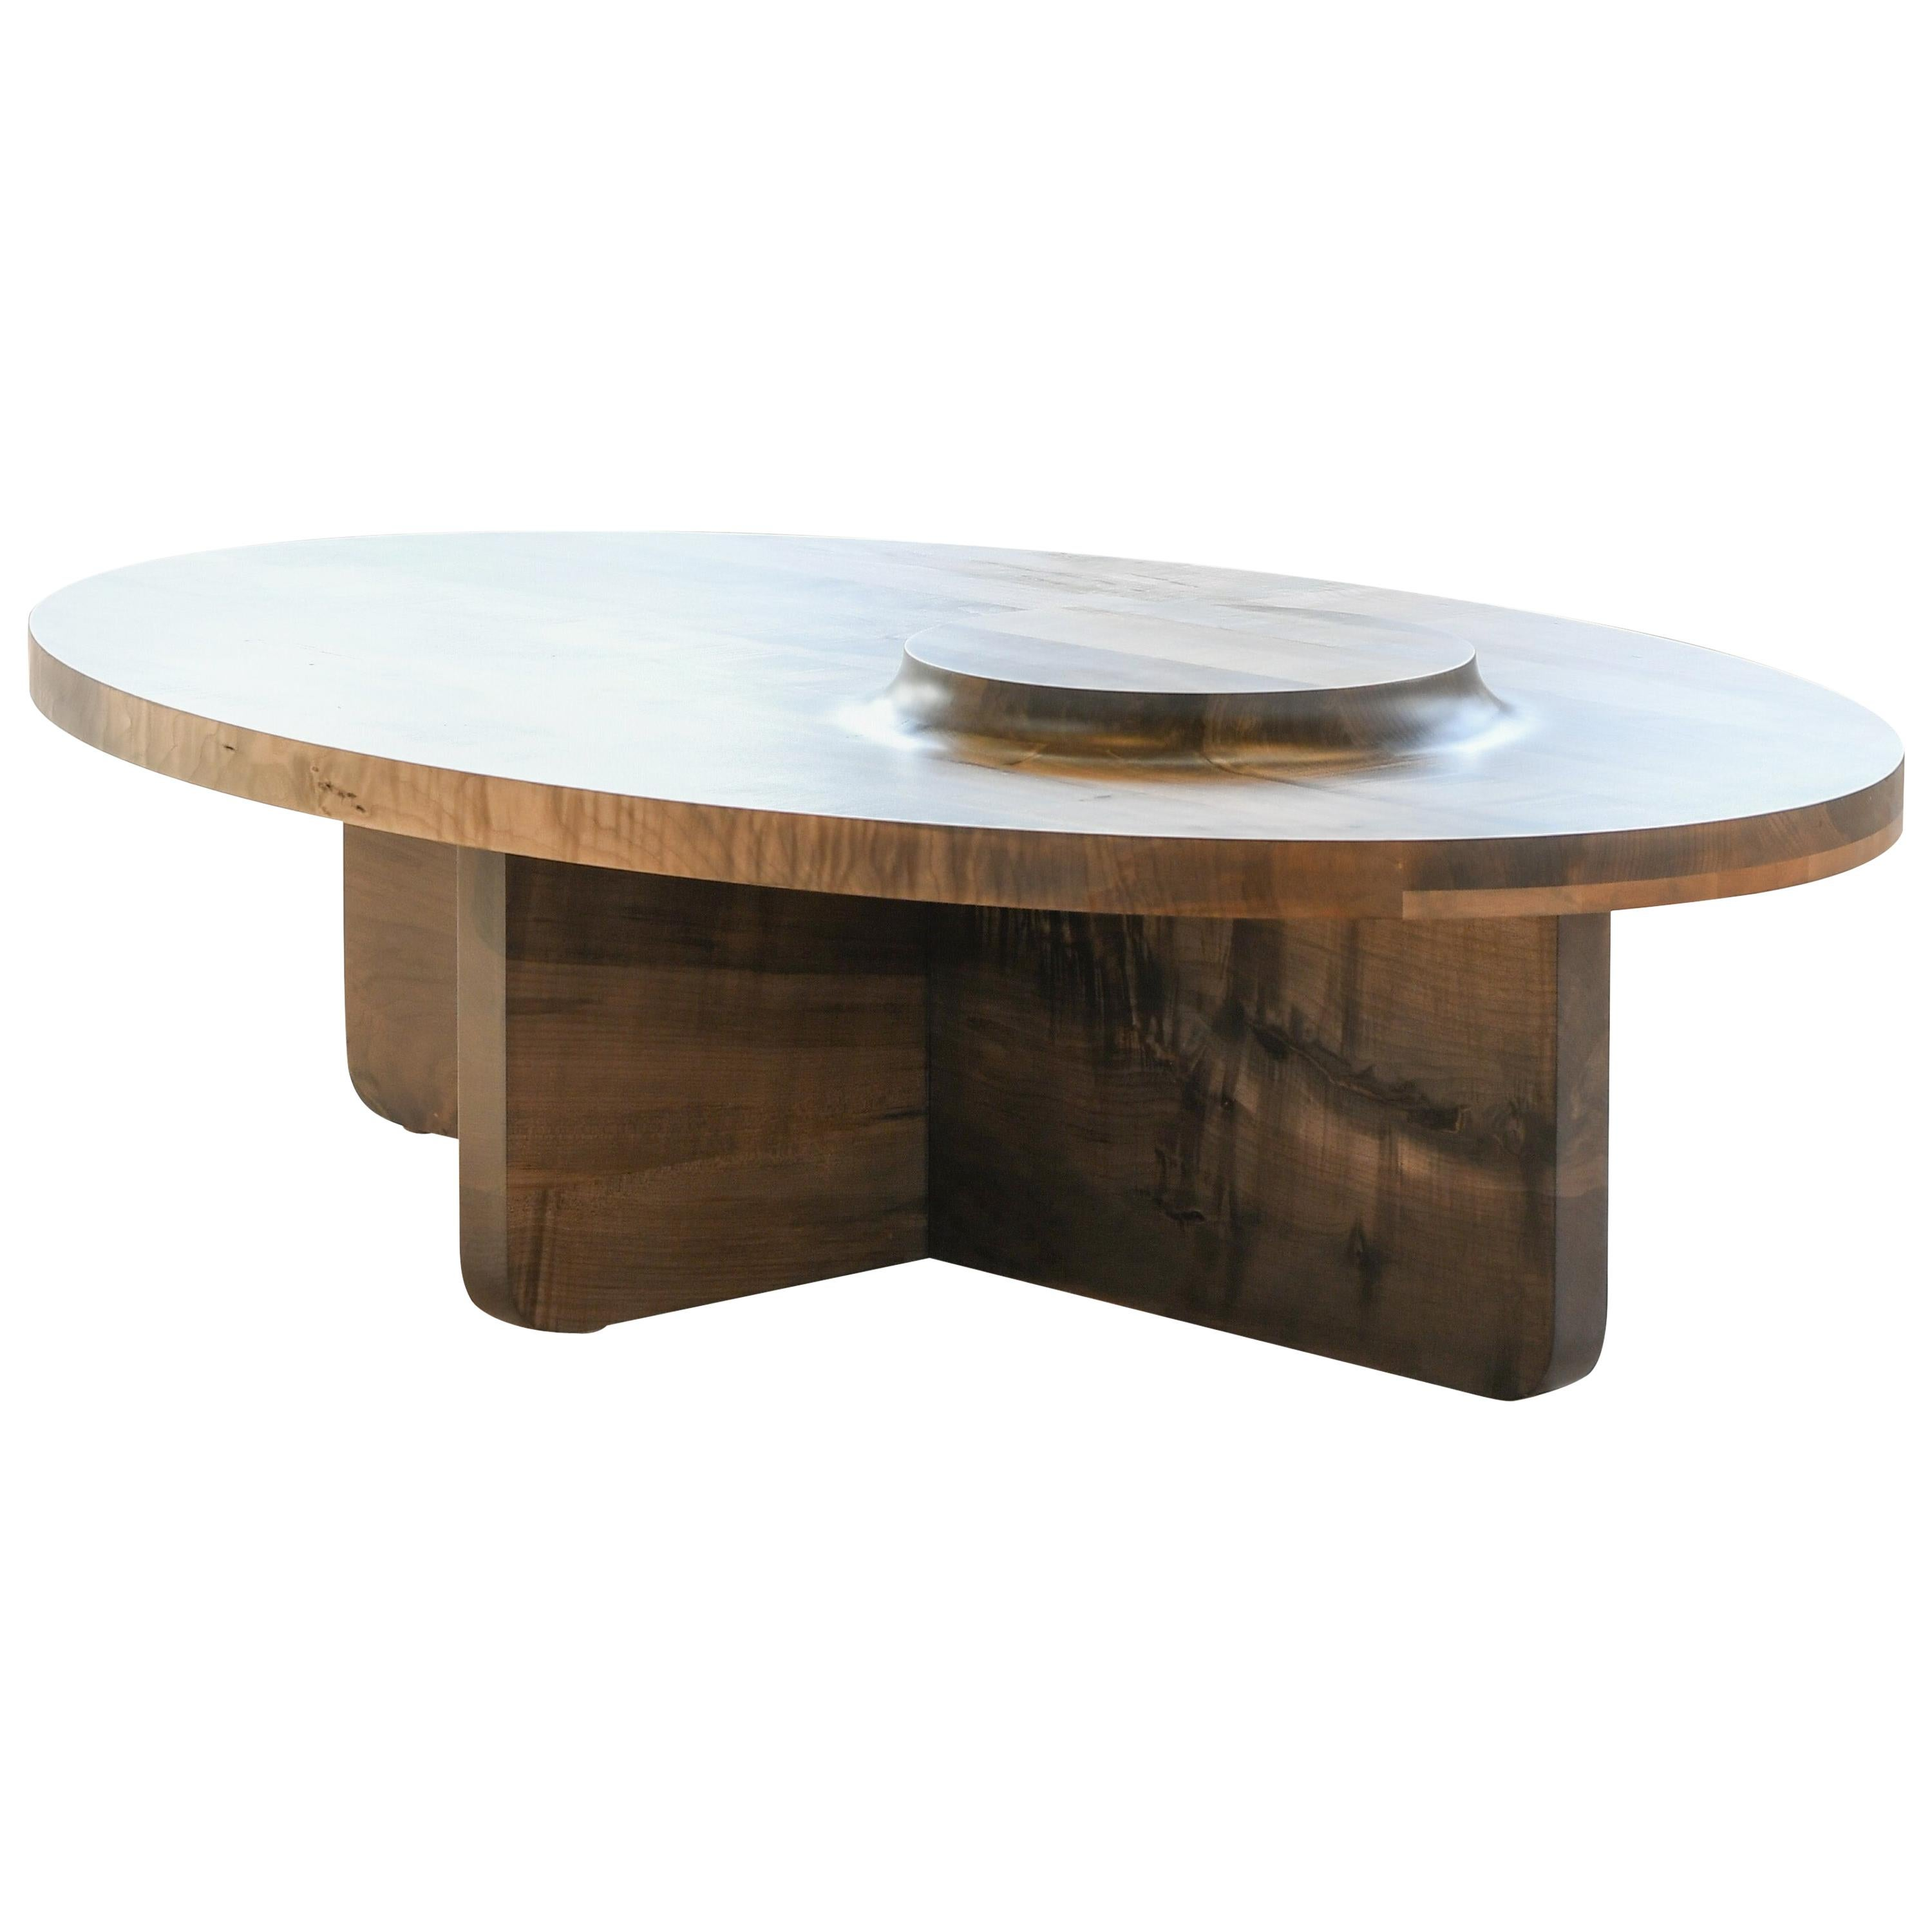 Mesa Table, Hand Carved Oval Coffee Table in Oxidized Maple